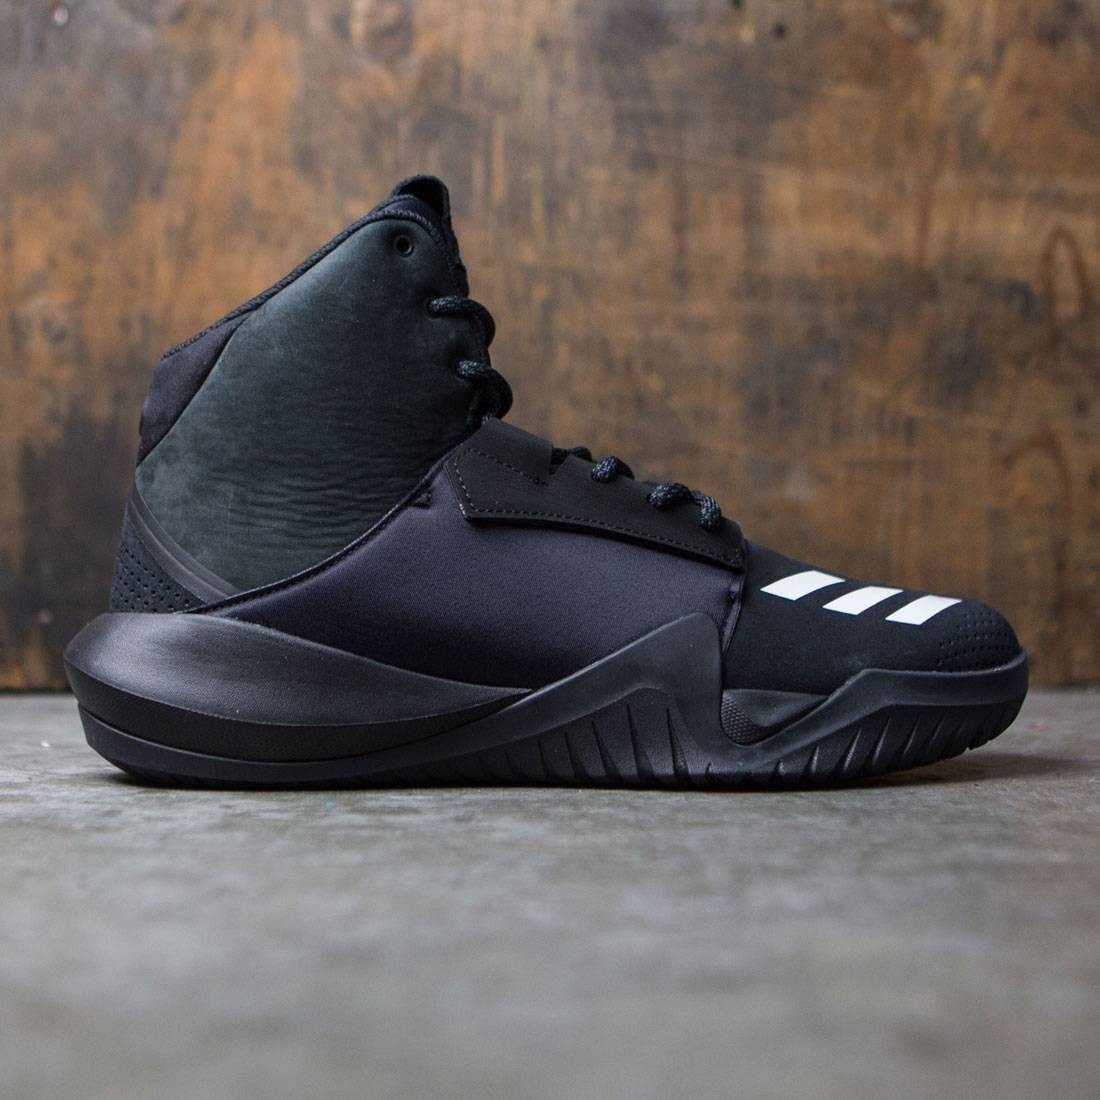 quality design e8867 a60e2 Adidas Consortium Day One Men Crazy Team black white